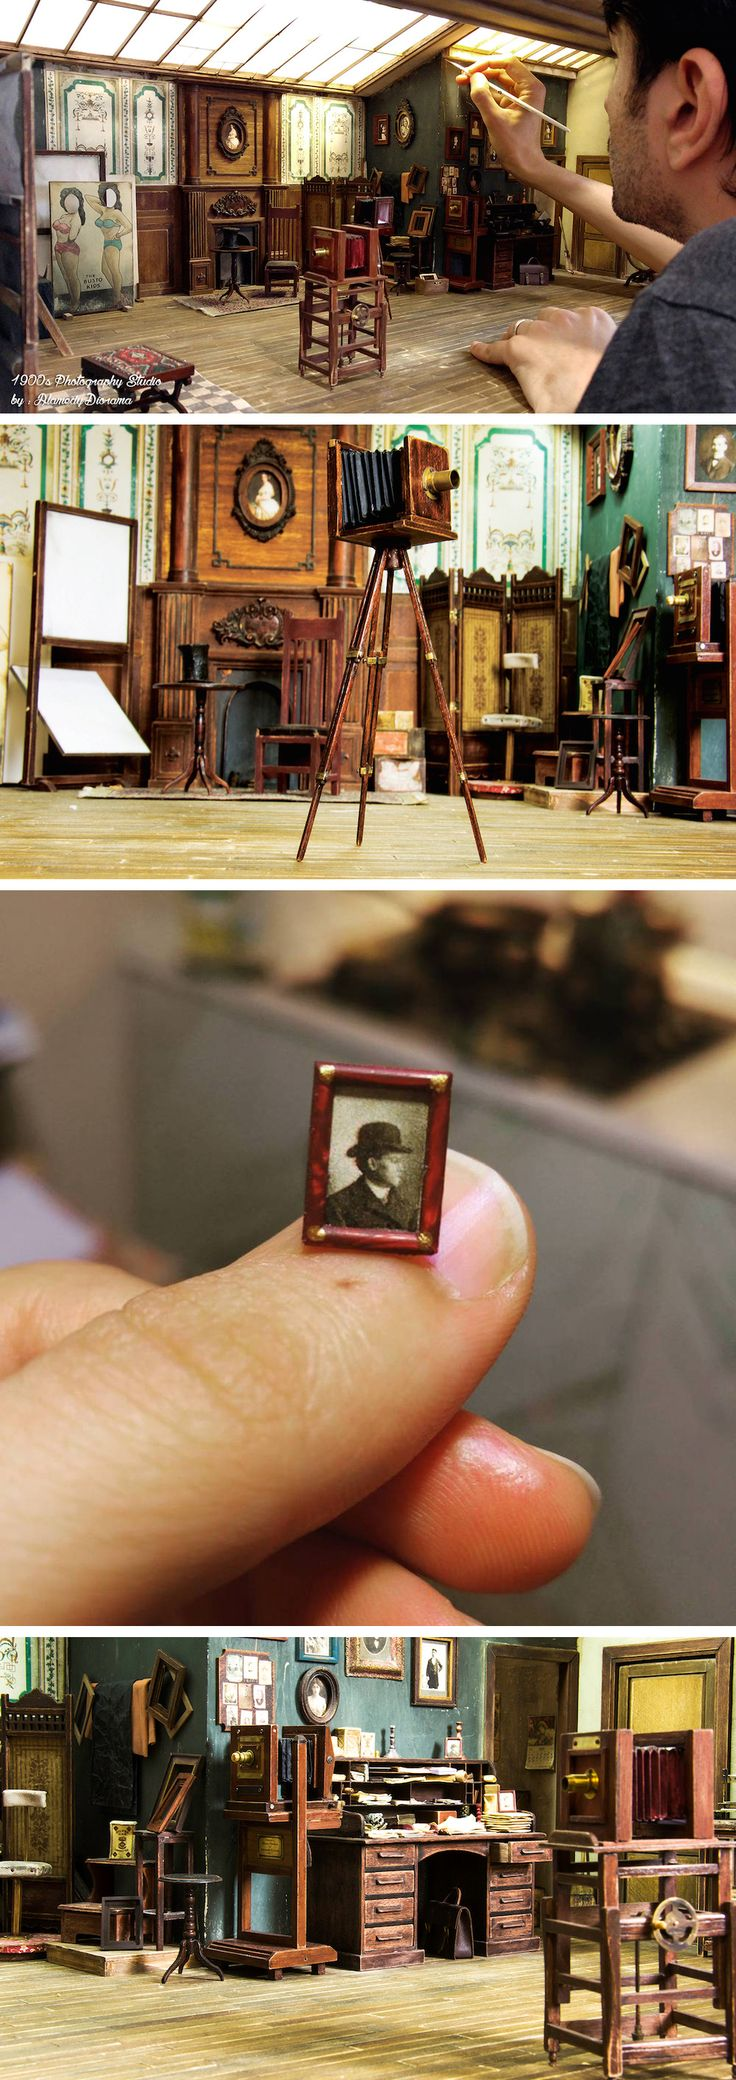 Designer dioramas miniature rooms - An Historically Accurate 19th Century Photo Studio Built In 1 12 Scale